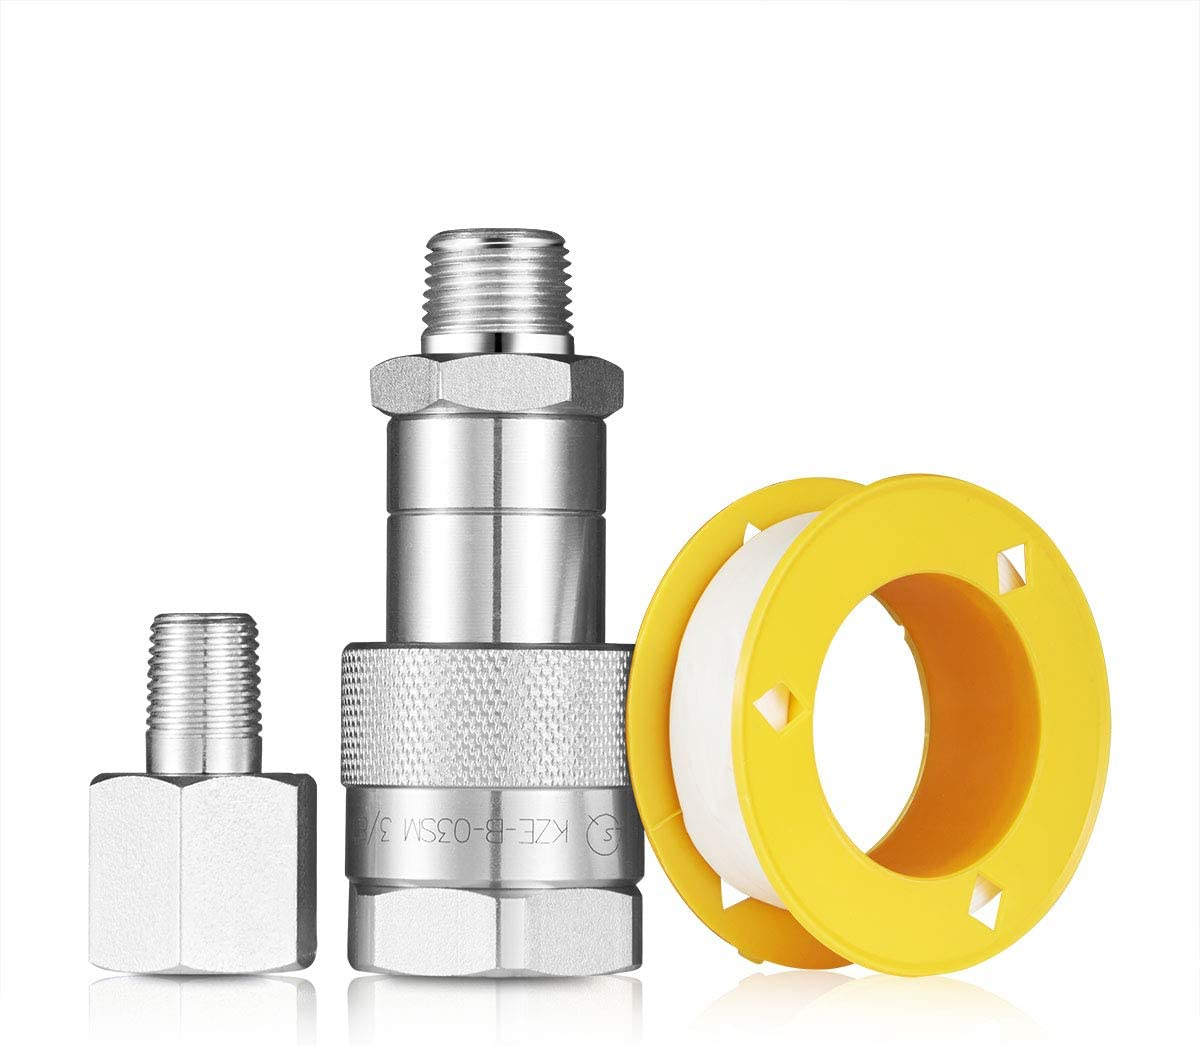 3//8 Coupler Reducer Kit Used for Connecting NPT 3//8 Couplers Hydraulic Pump with NPT 1//4 Couplers Heat Press